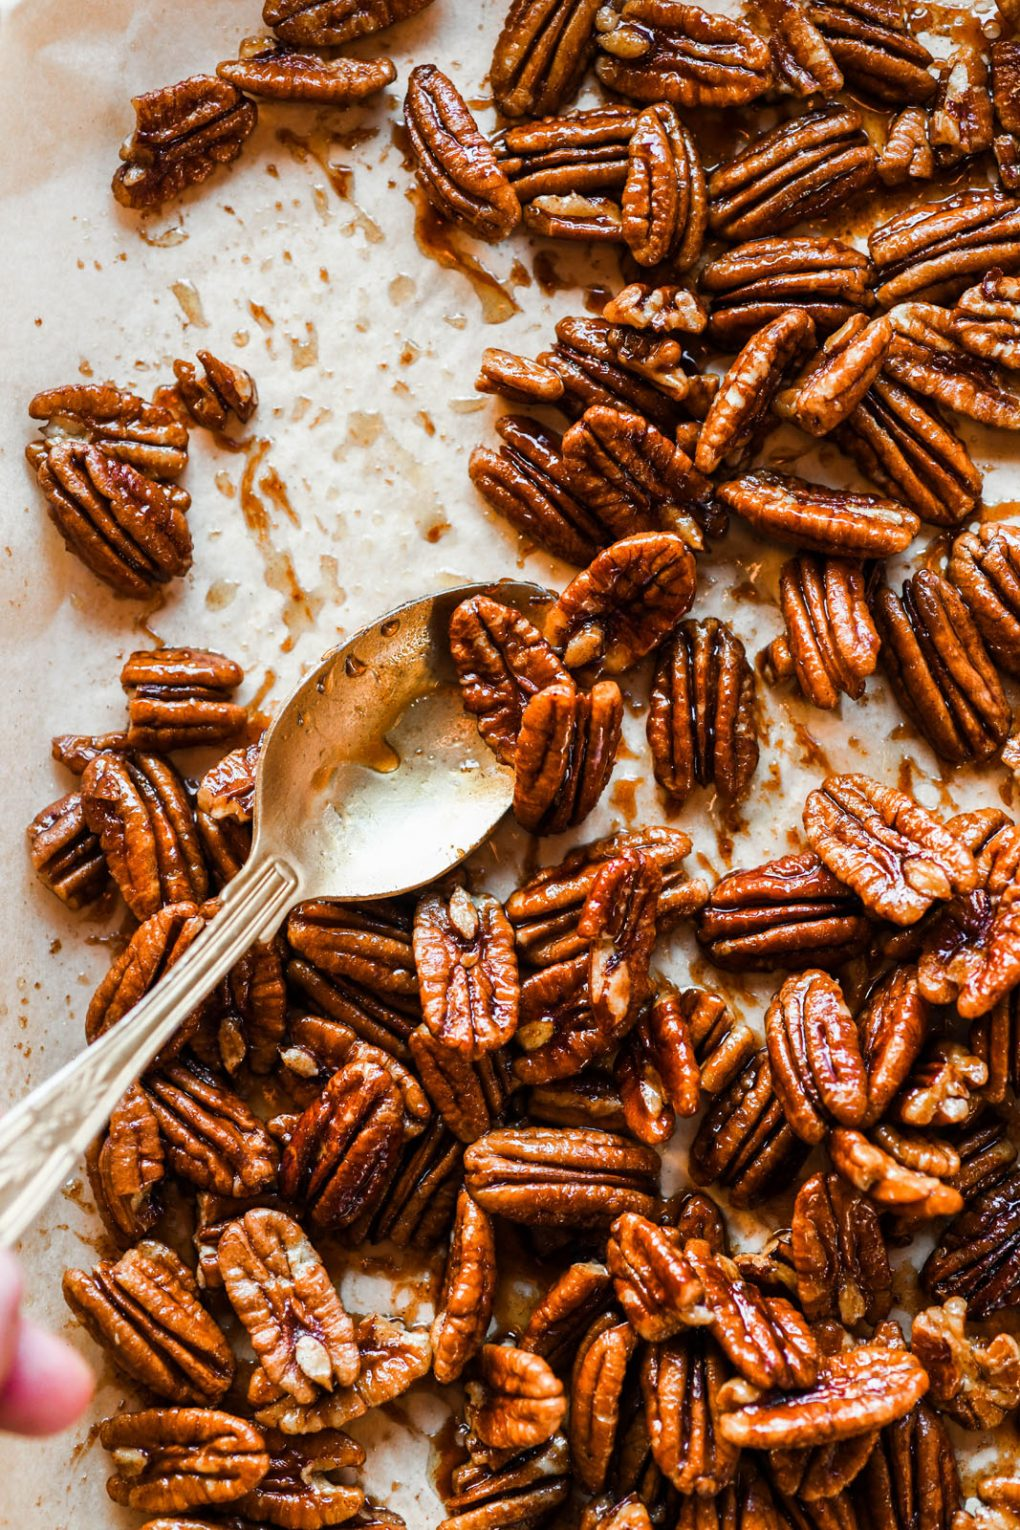 Overhead view of a spoon scraping sticky candied pecans onto one side of a parchment lined baking sheet.